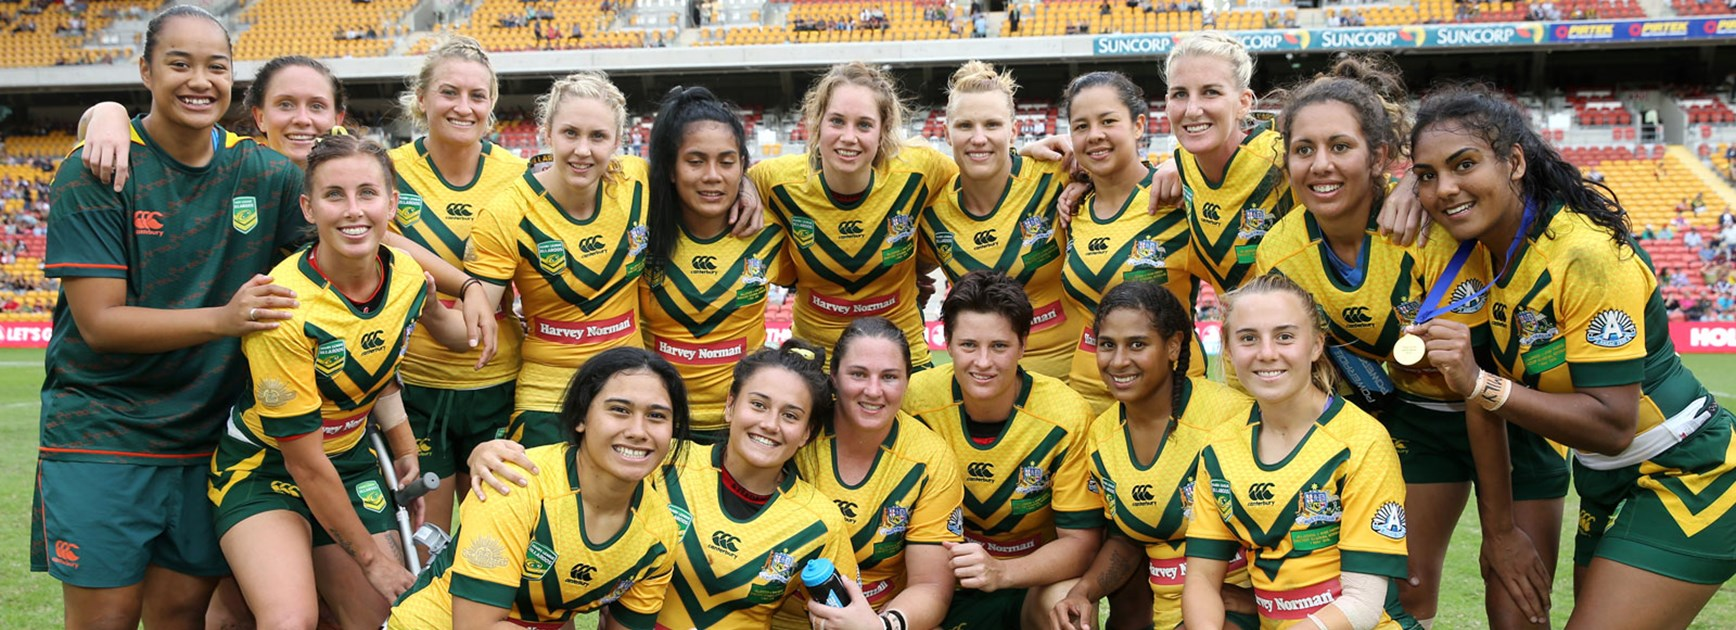 The Australian Jillaroos celebrate following their win over the Kiwi Ferns at Suncorp Stadium.